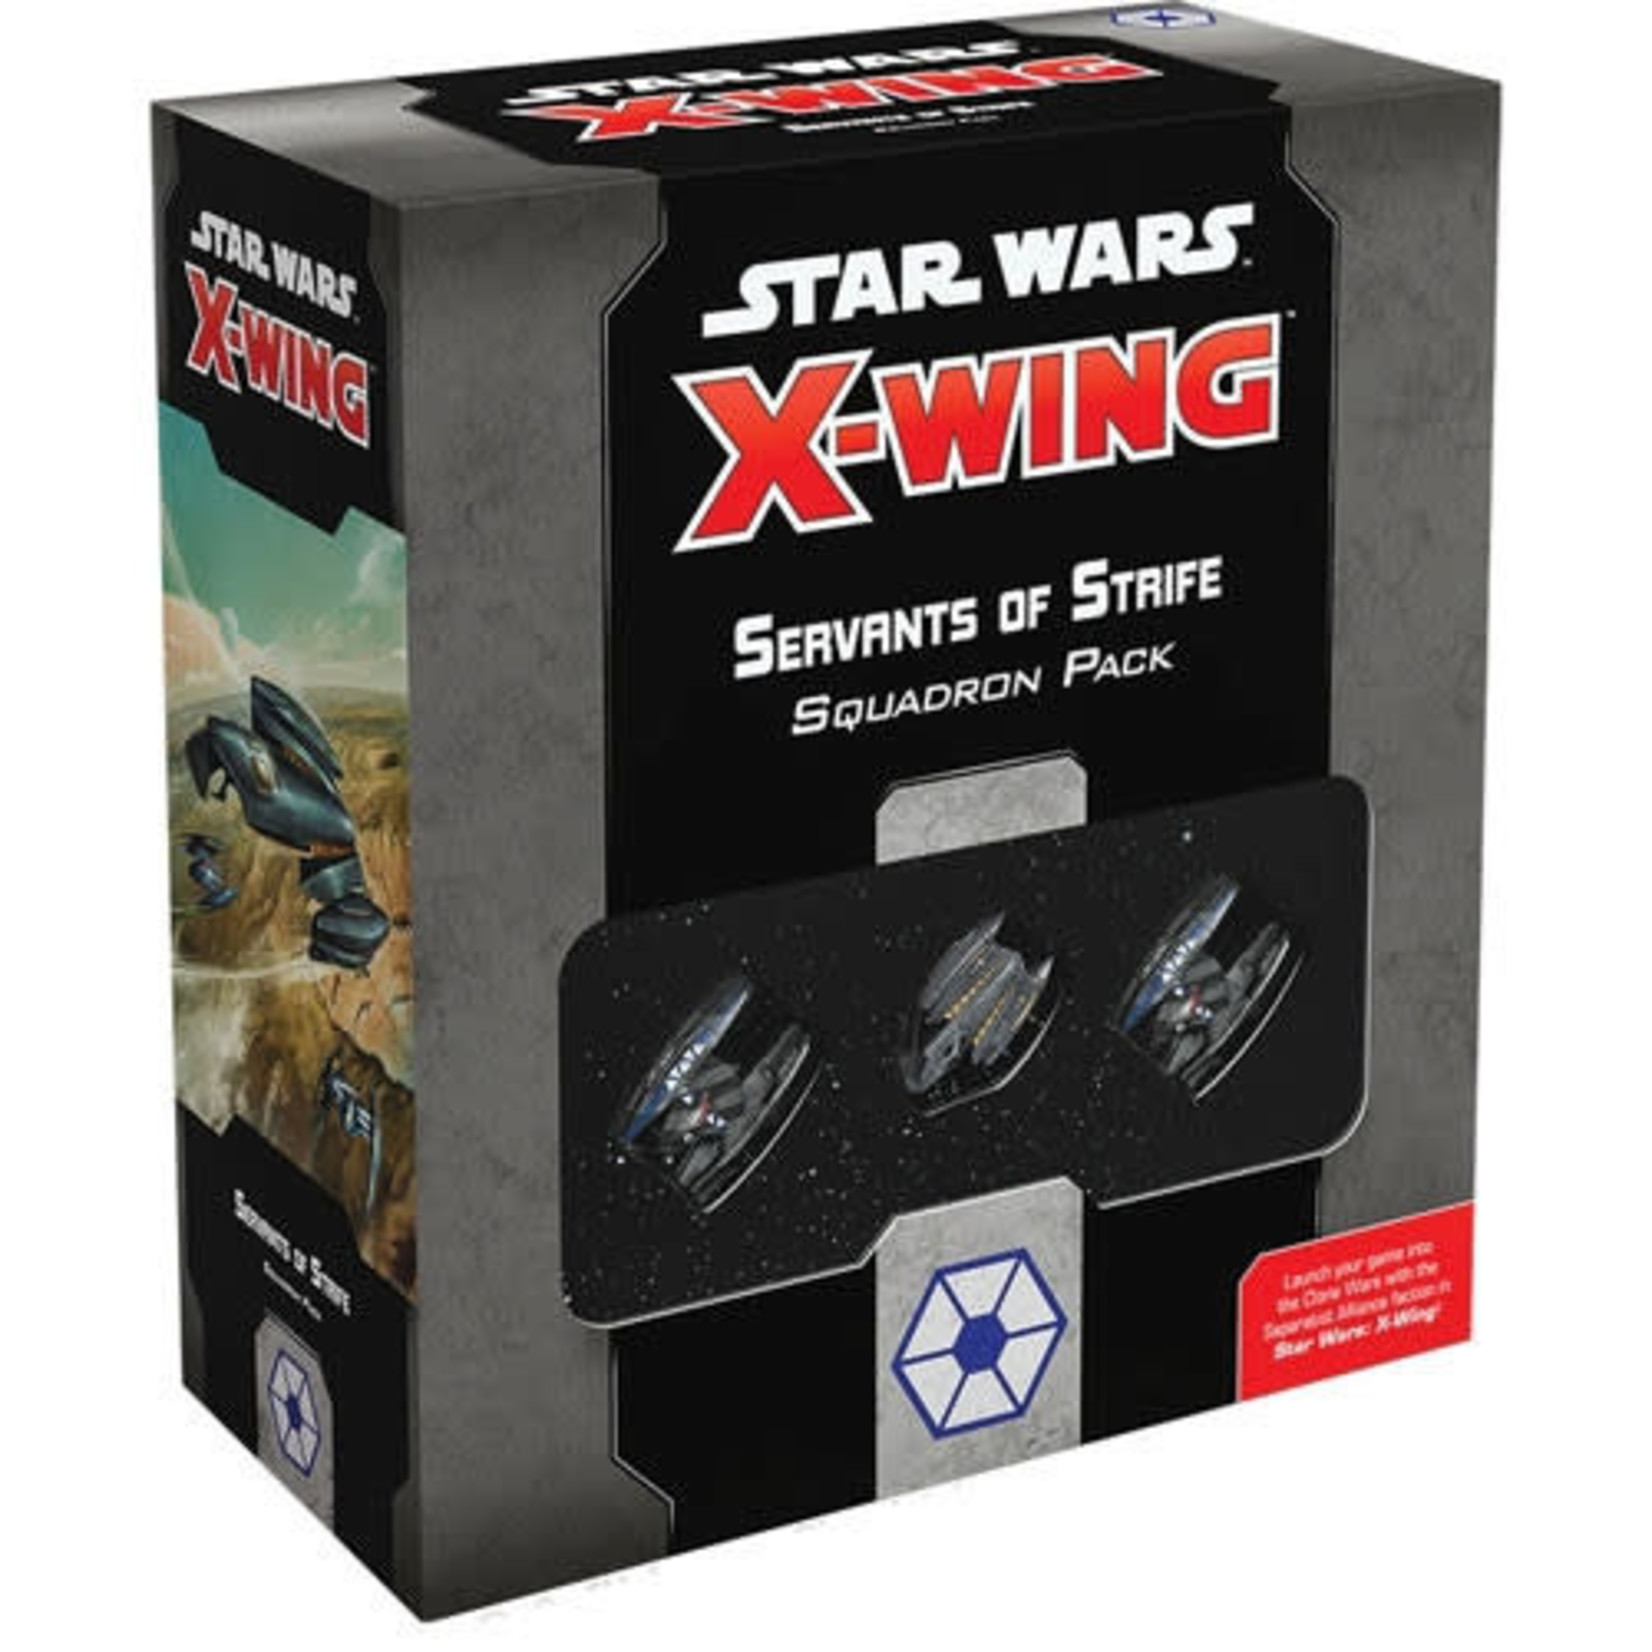 Star Wars X-Wing 2e: Servants of Strife Squadron Pack